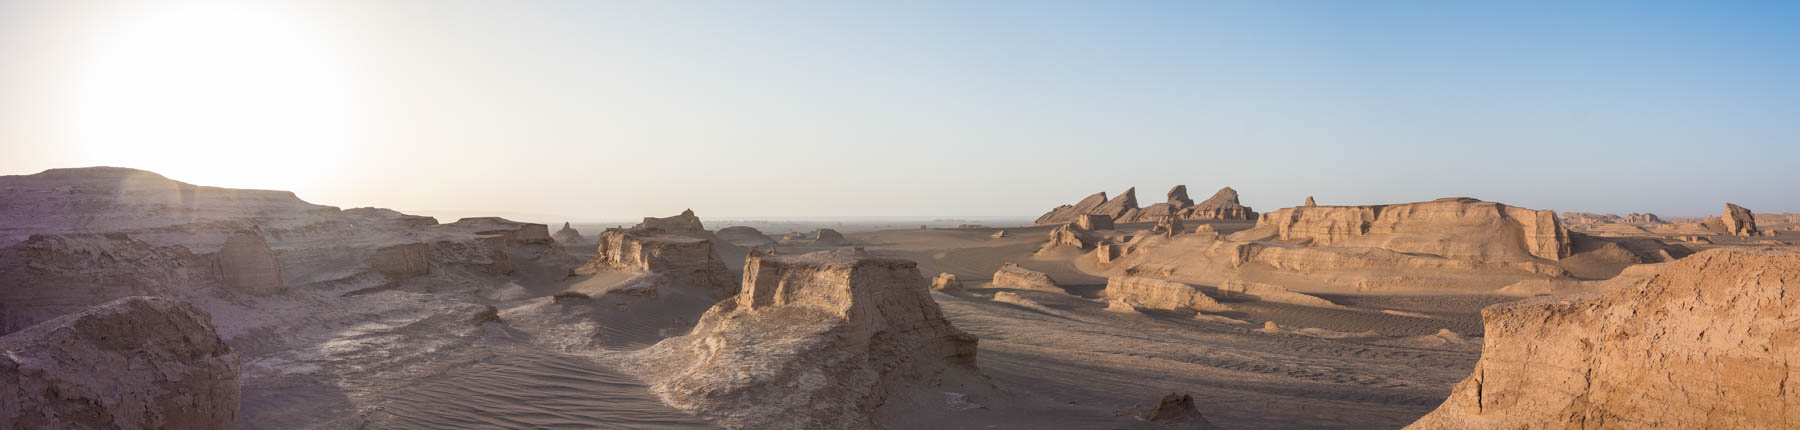 A panoramic view of the Kaluts desert in Iran